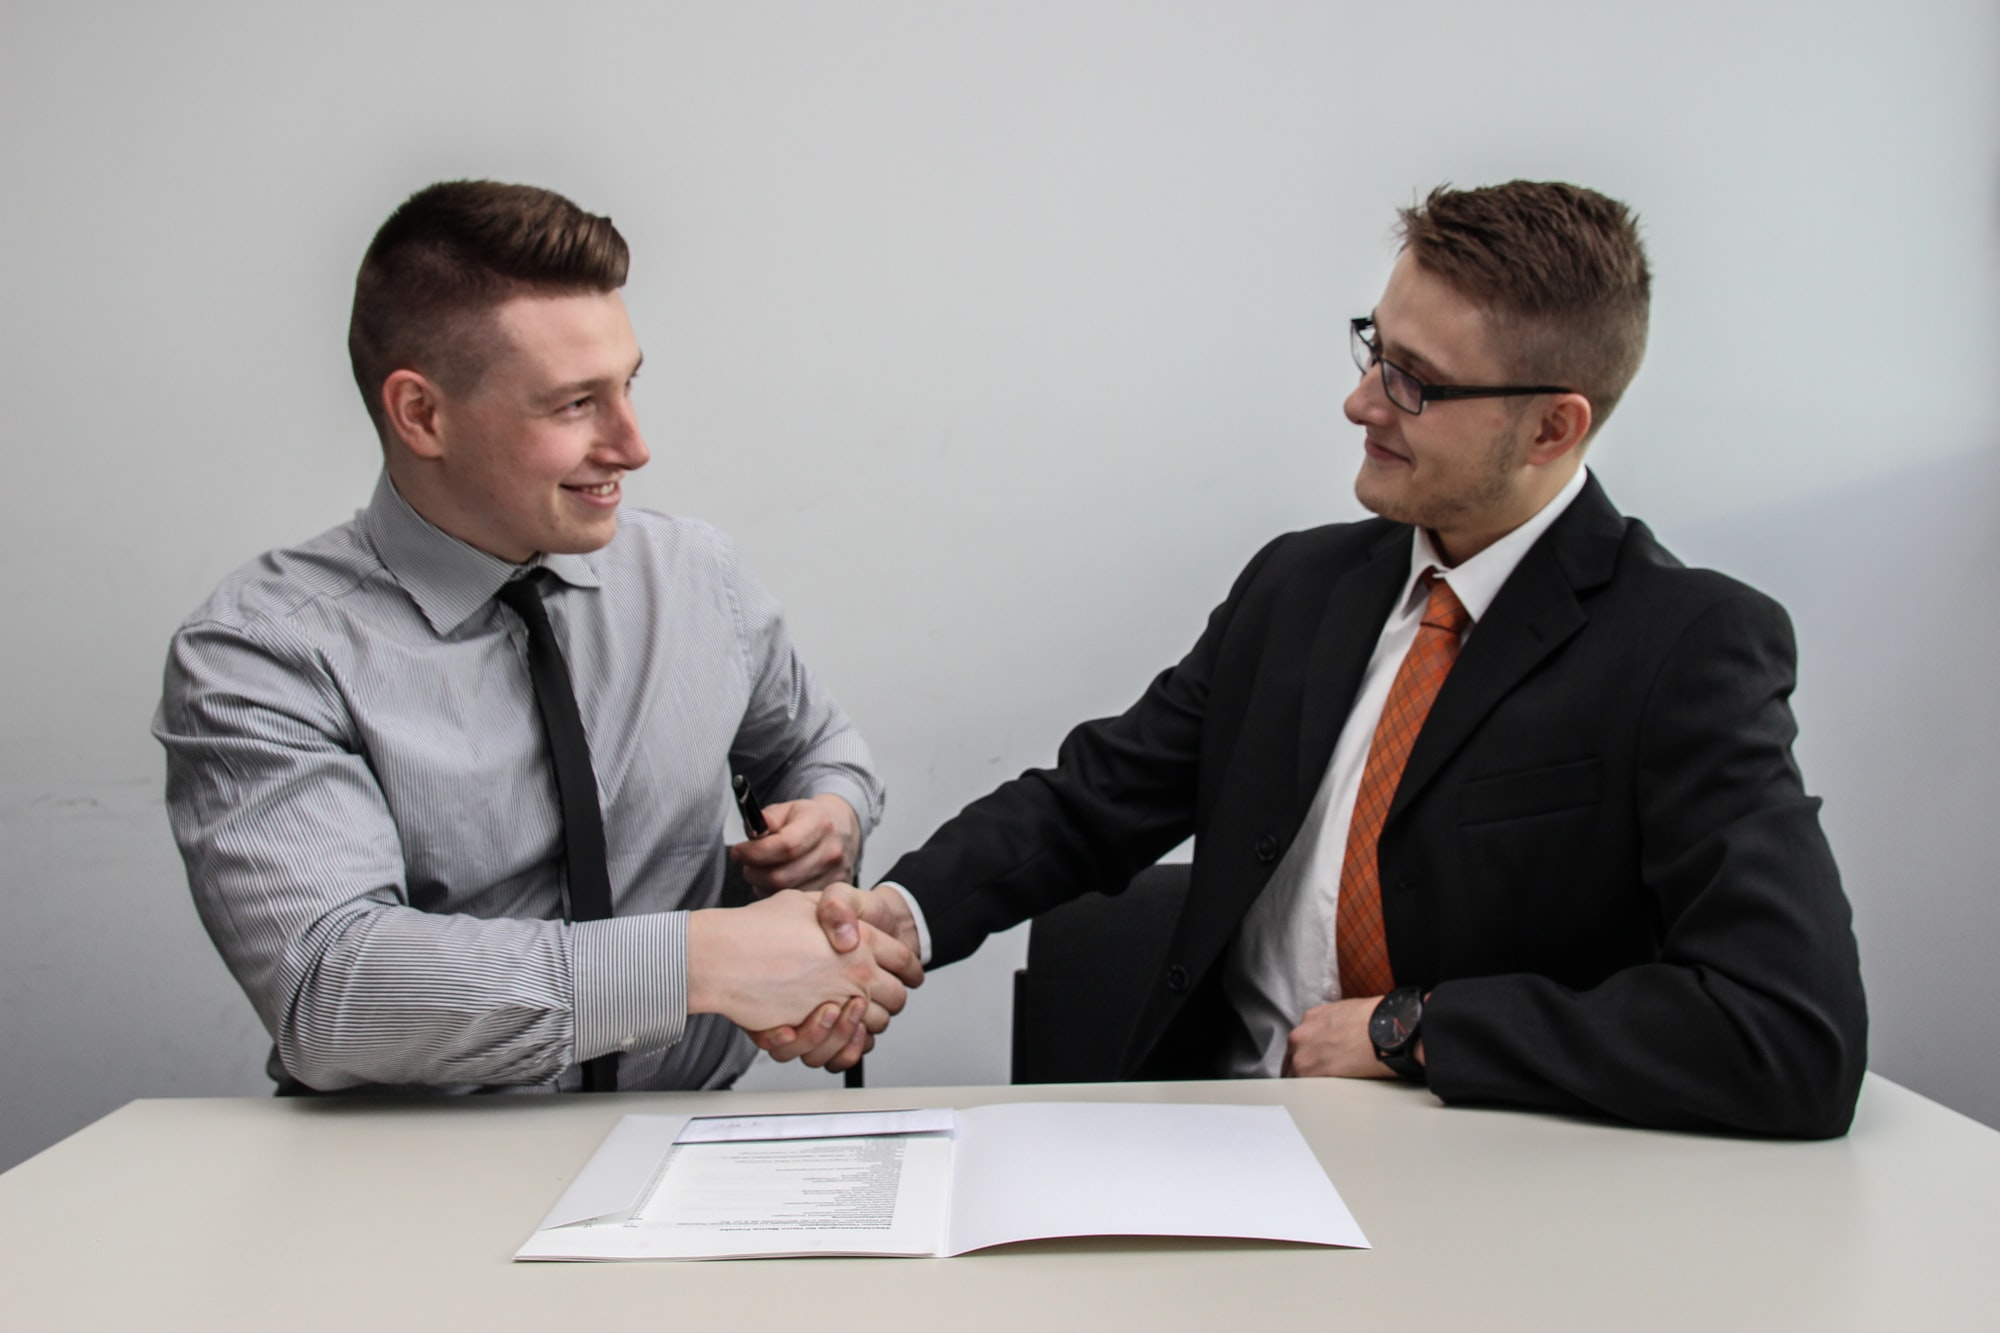 How to Make the Interview Easier… for Them